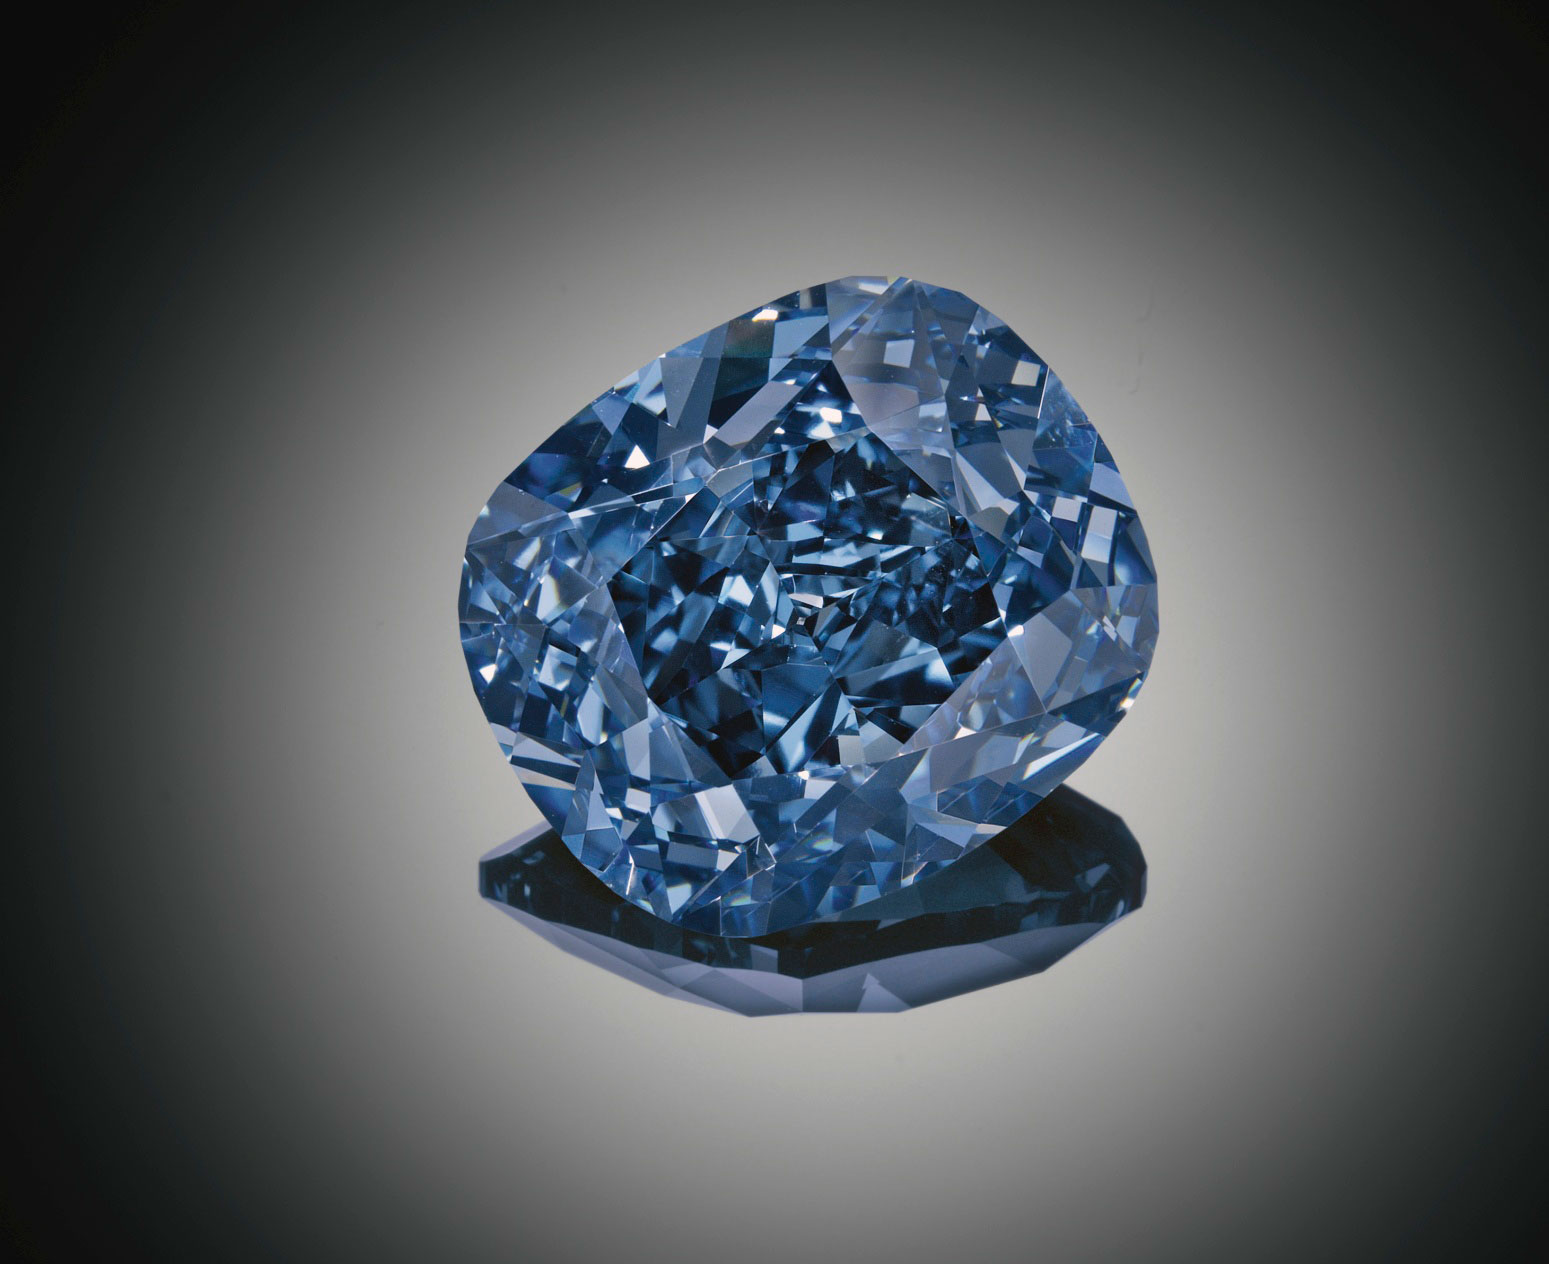 The 12.03 cts Blue Moon diamond